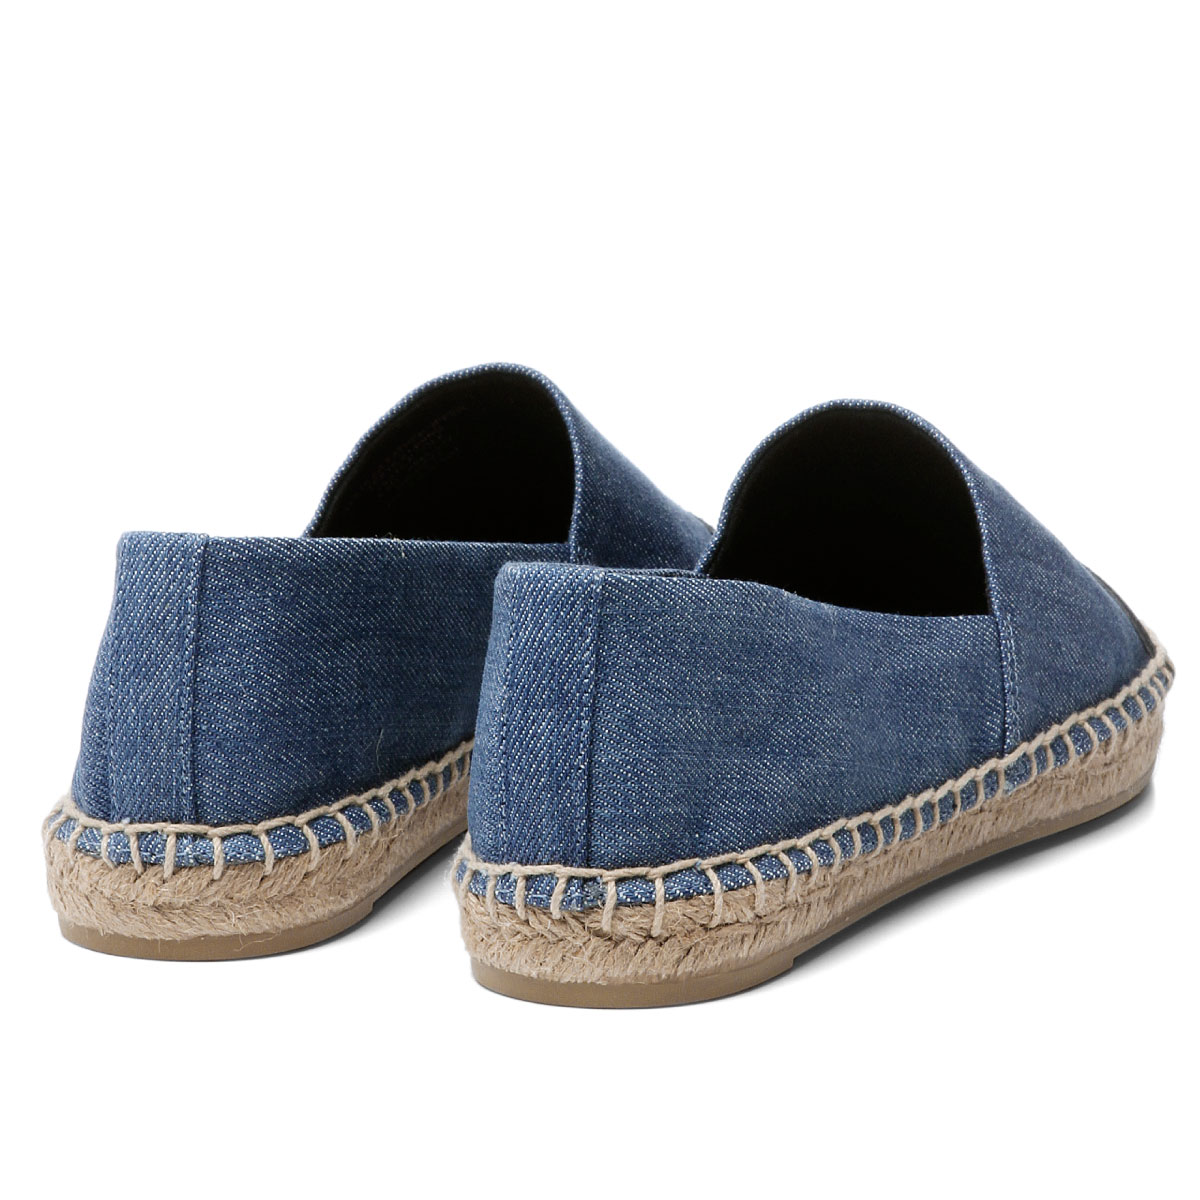 e383cb3407702 Tolly Birch TORY BURCH shoes Lady s 46767 435 espadrille COLOR BLOCK FLAT  color block flat DENIM CHAMBRAY PERFECT NAVY is blue